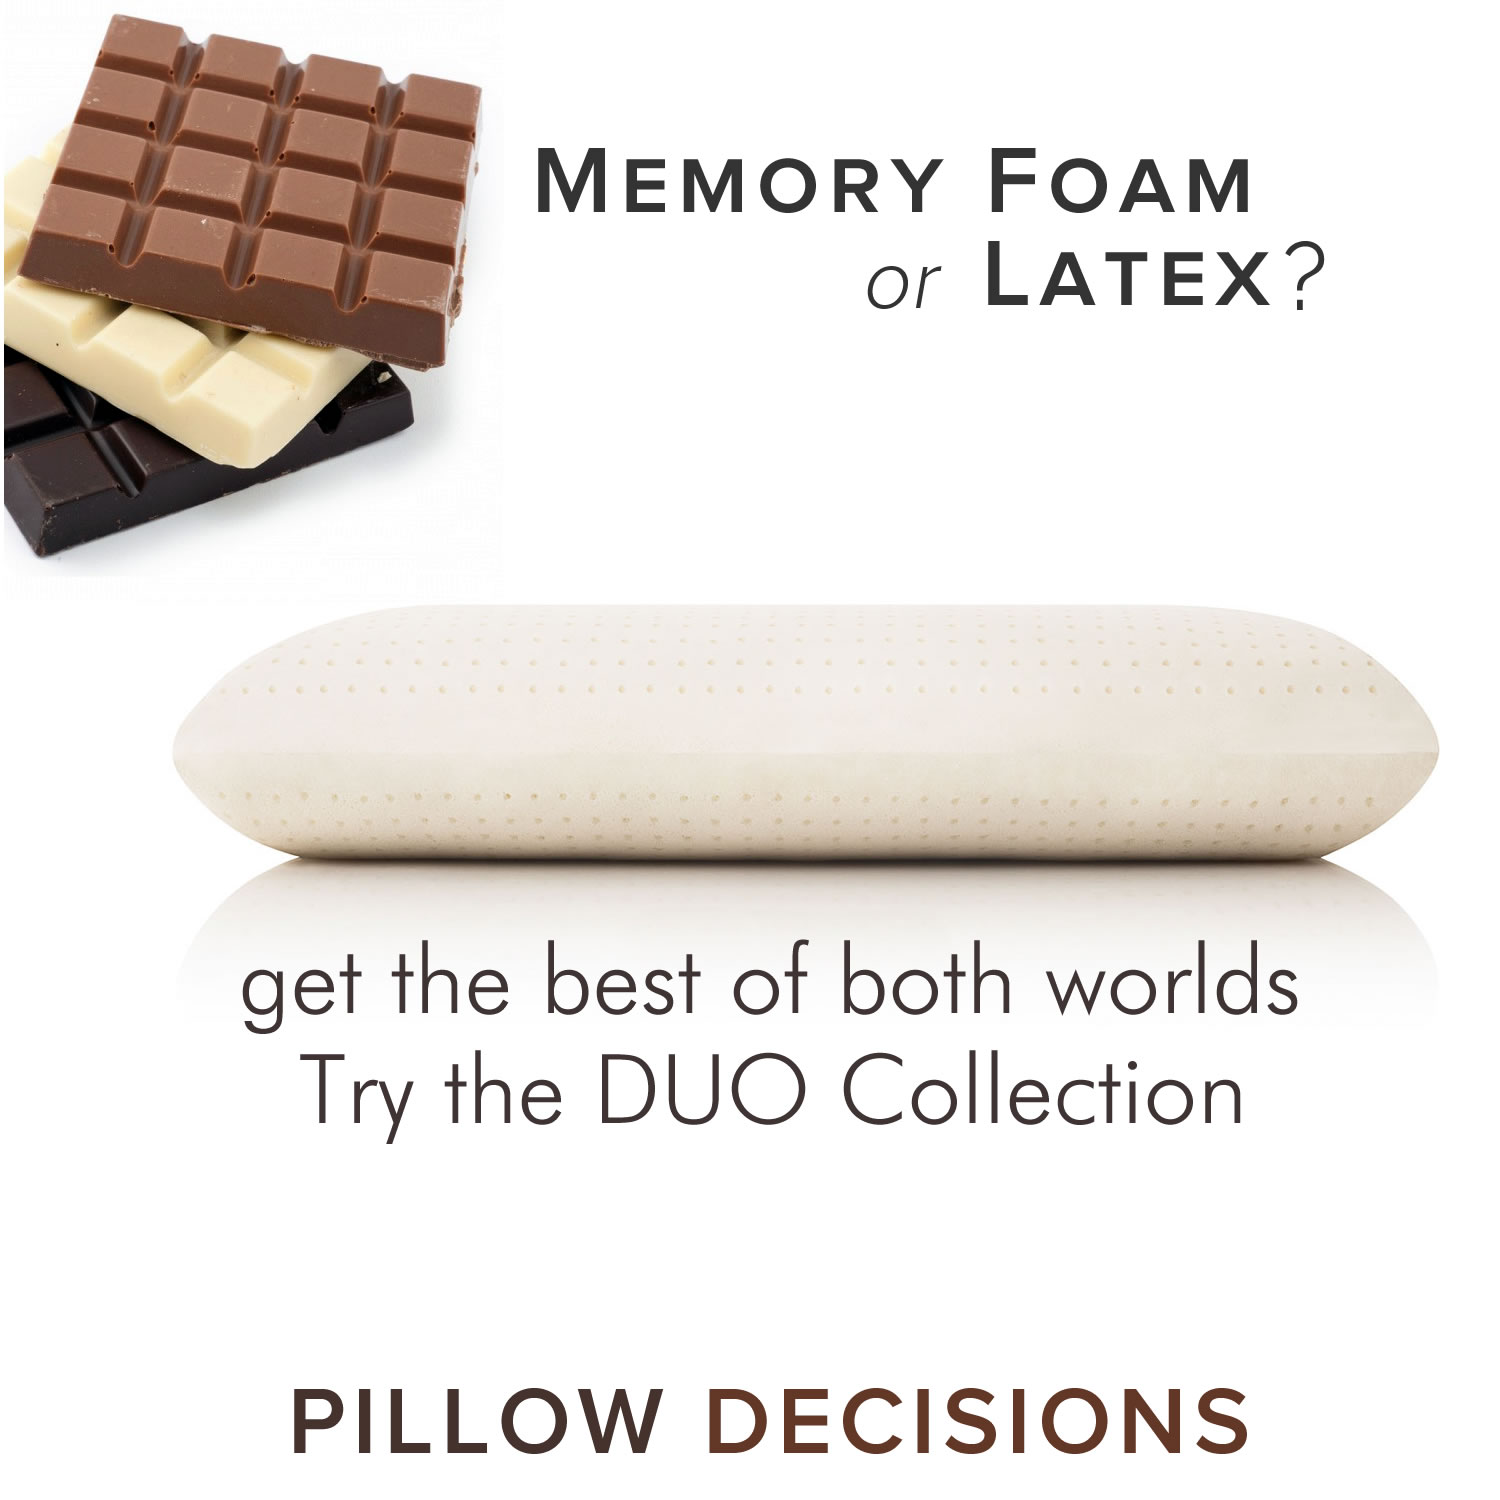 Pillow decisions? latex or memory foam. get the best of both worlds - try the duo pillow for when you just want a change